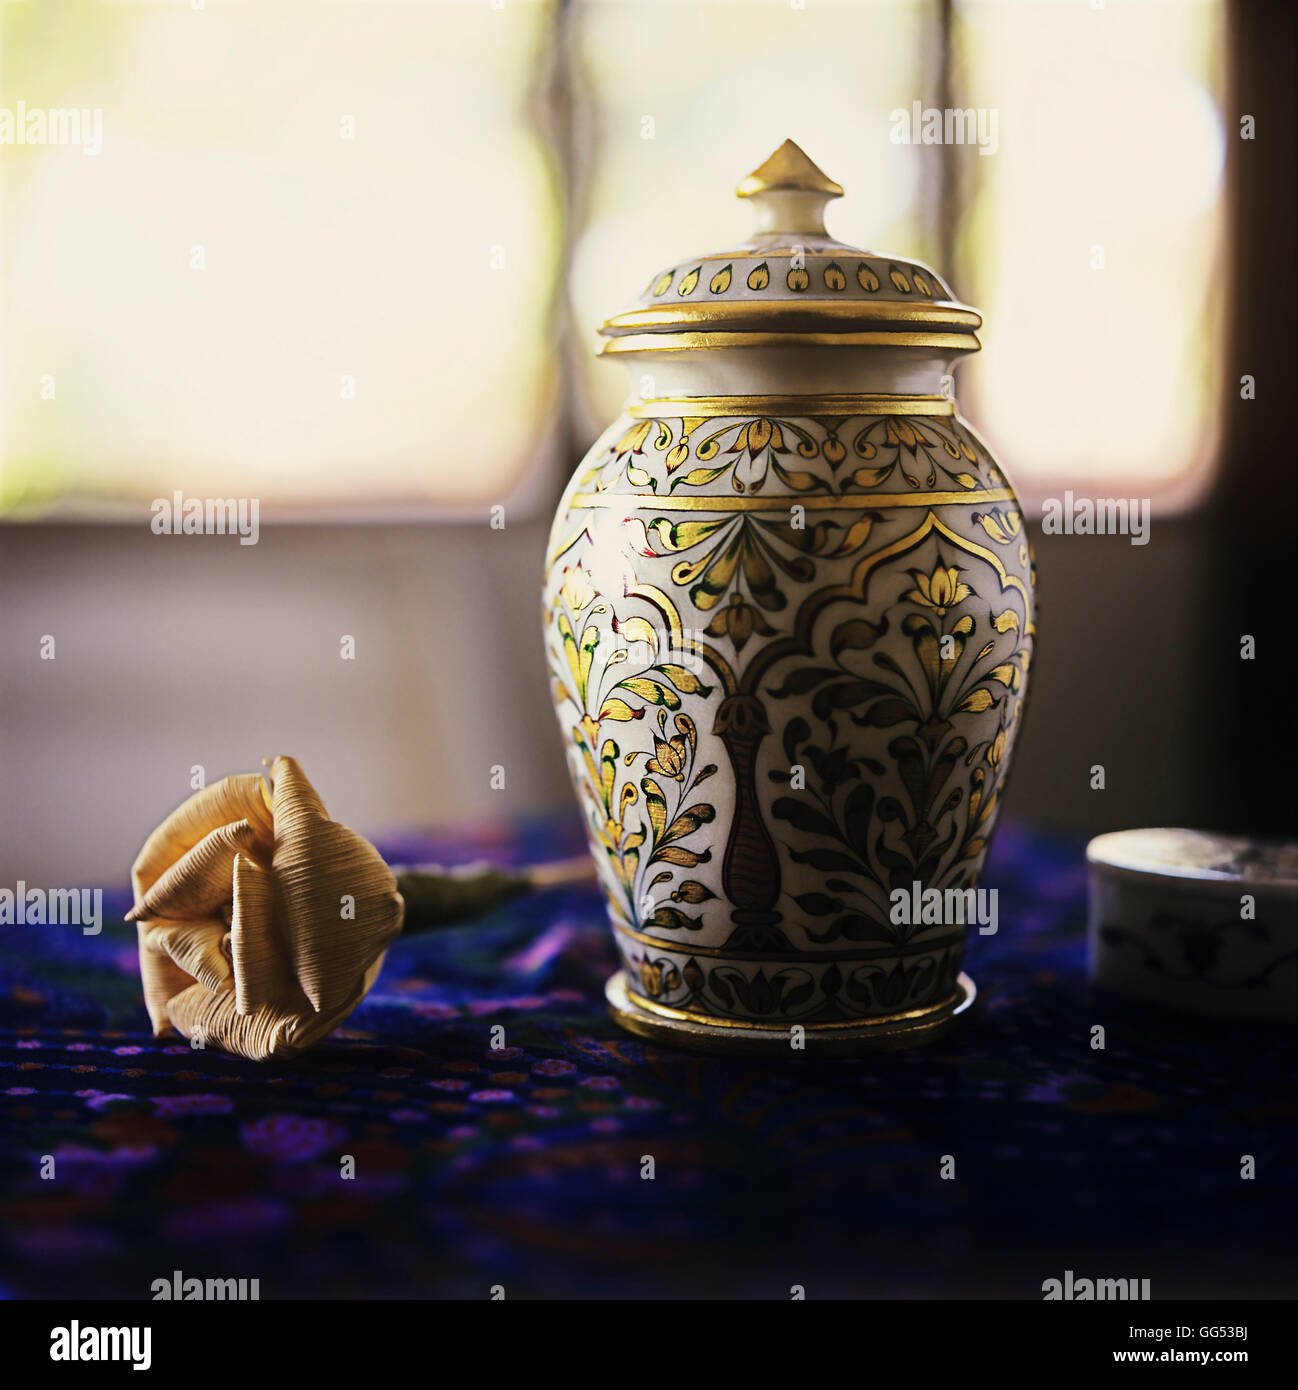 A Chinese urn - Stock Image